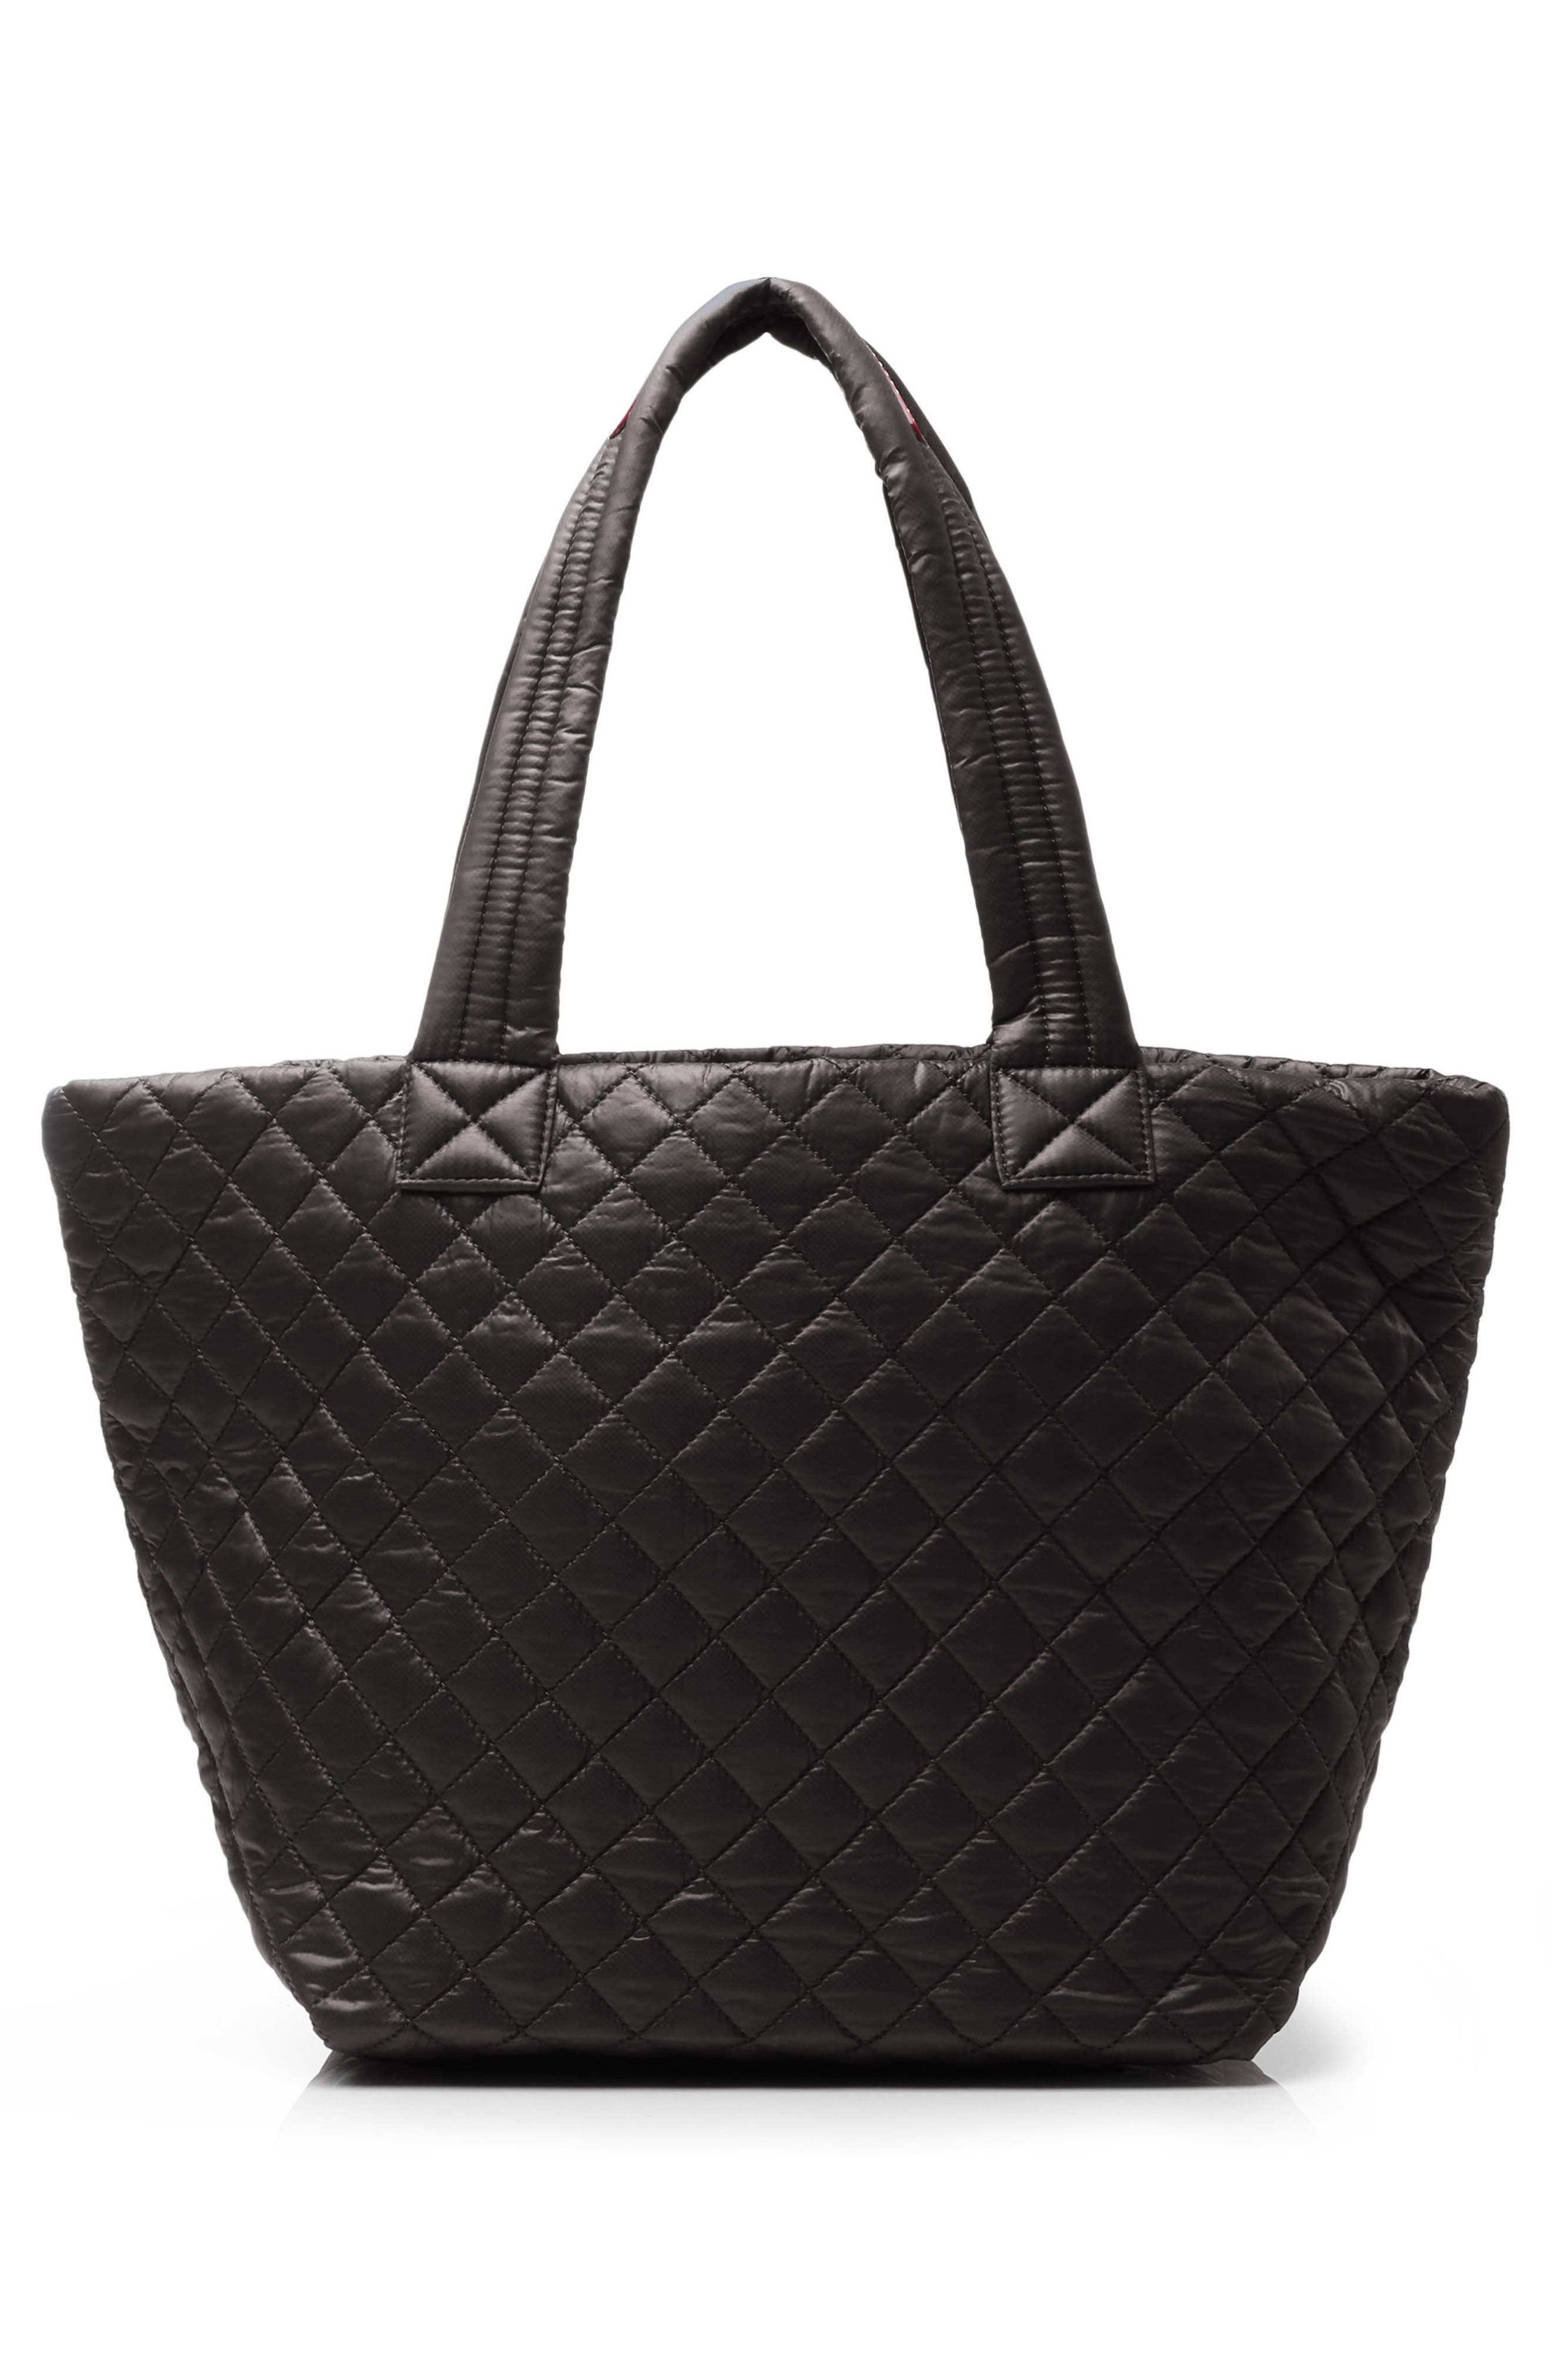 Medium Metro Tote,                             Alternate thumbnail 4, color,                             BLACK